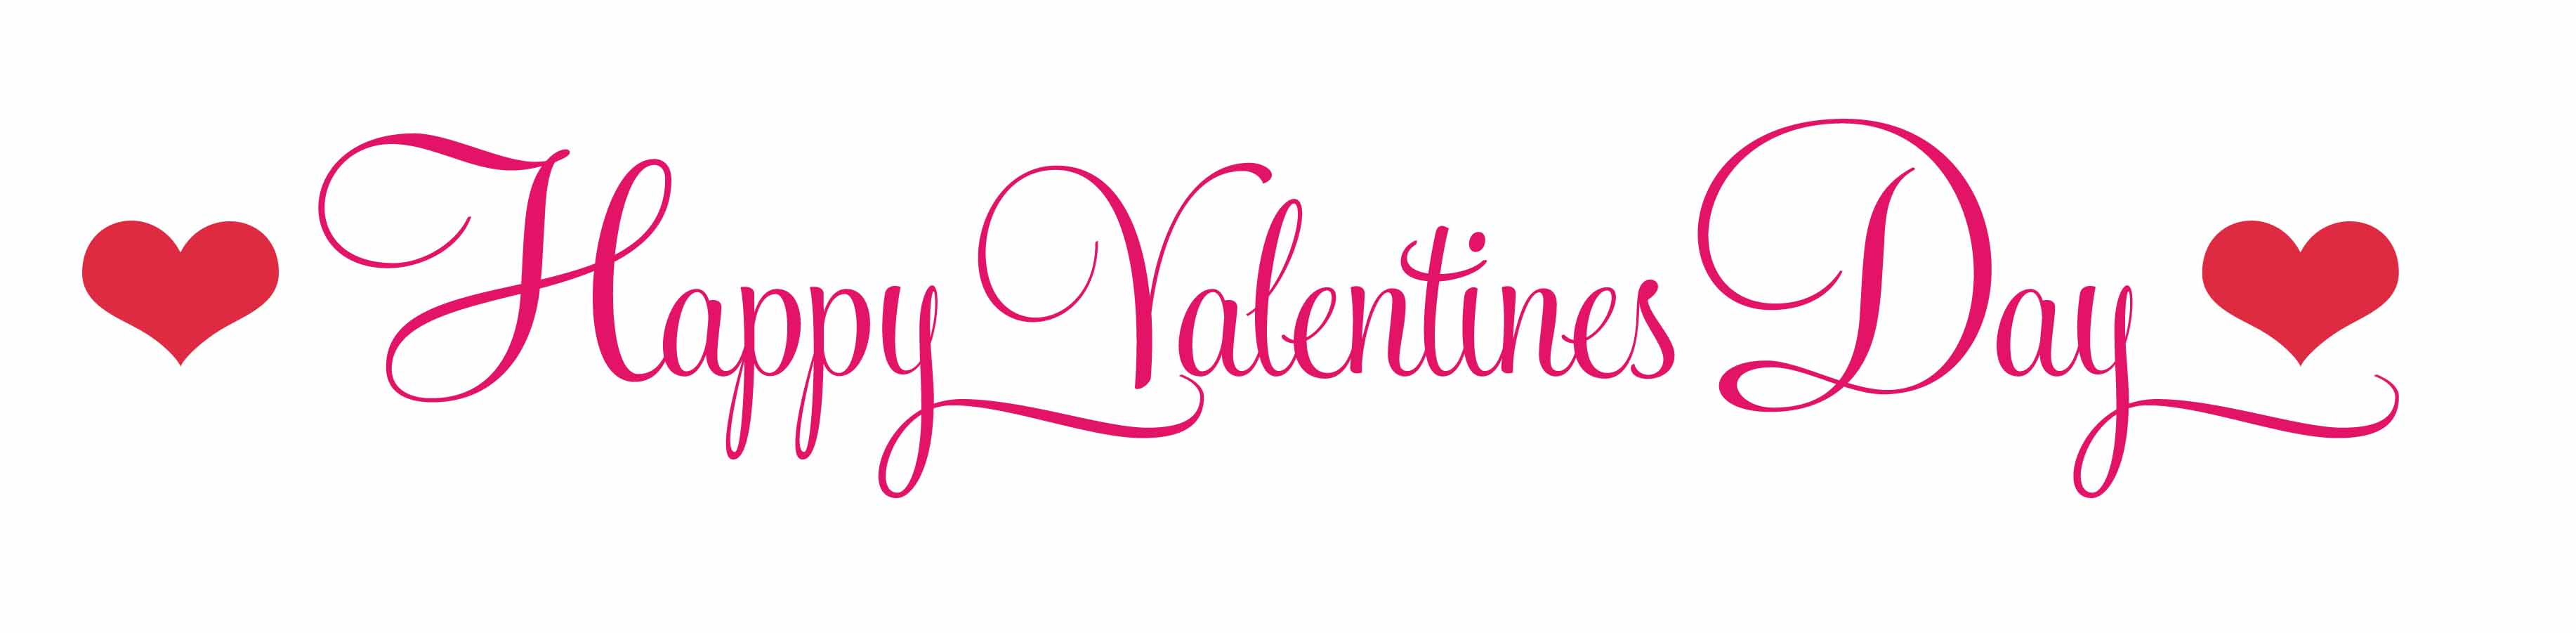 21 Happy Valentines Day Clipart Clipartlook